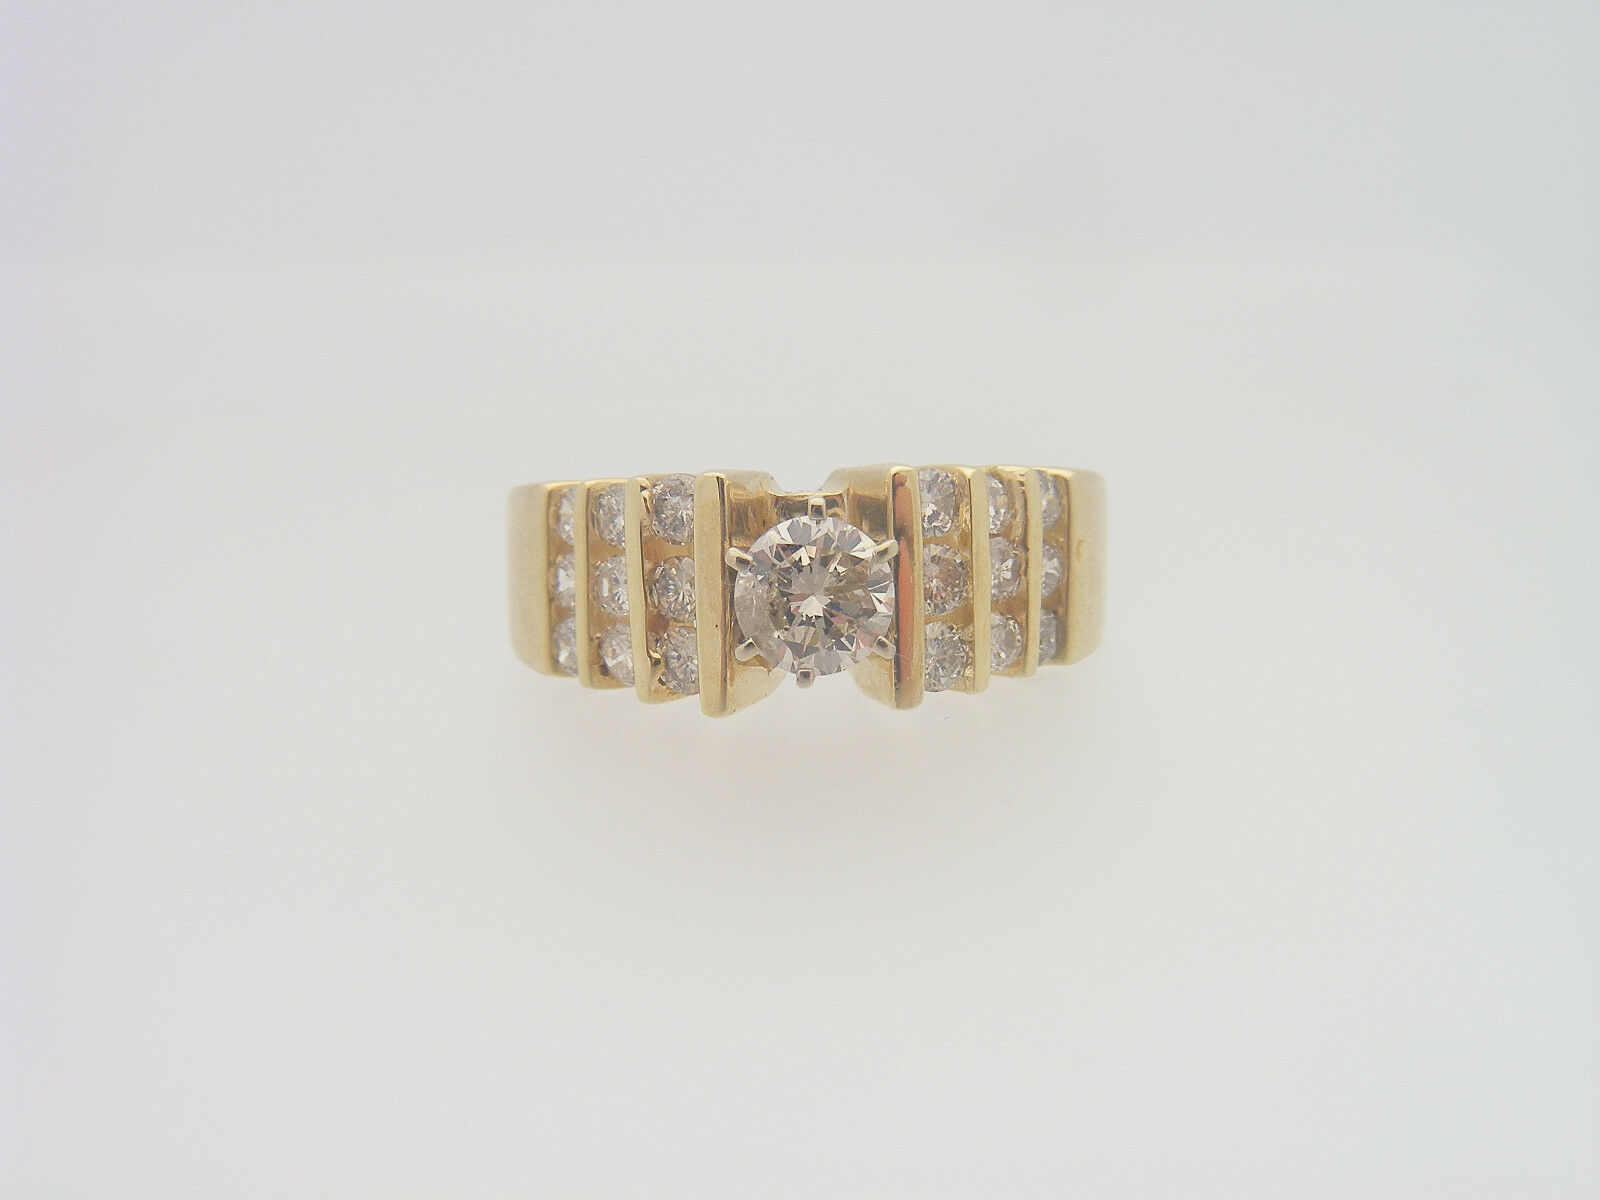 1.00 CARAT TOTAL WEIGHT ROUND CUT DIAMOND ENGAGEMENT RING YELLOW gold 14K